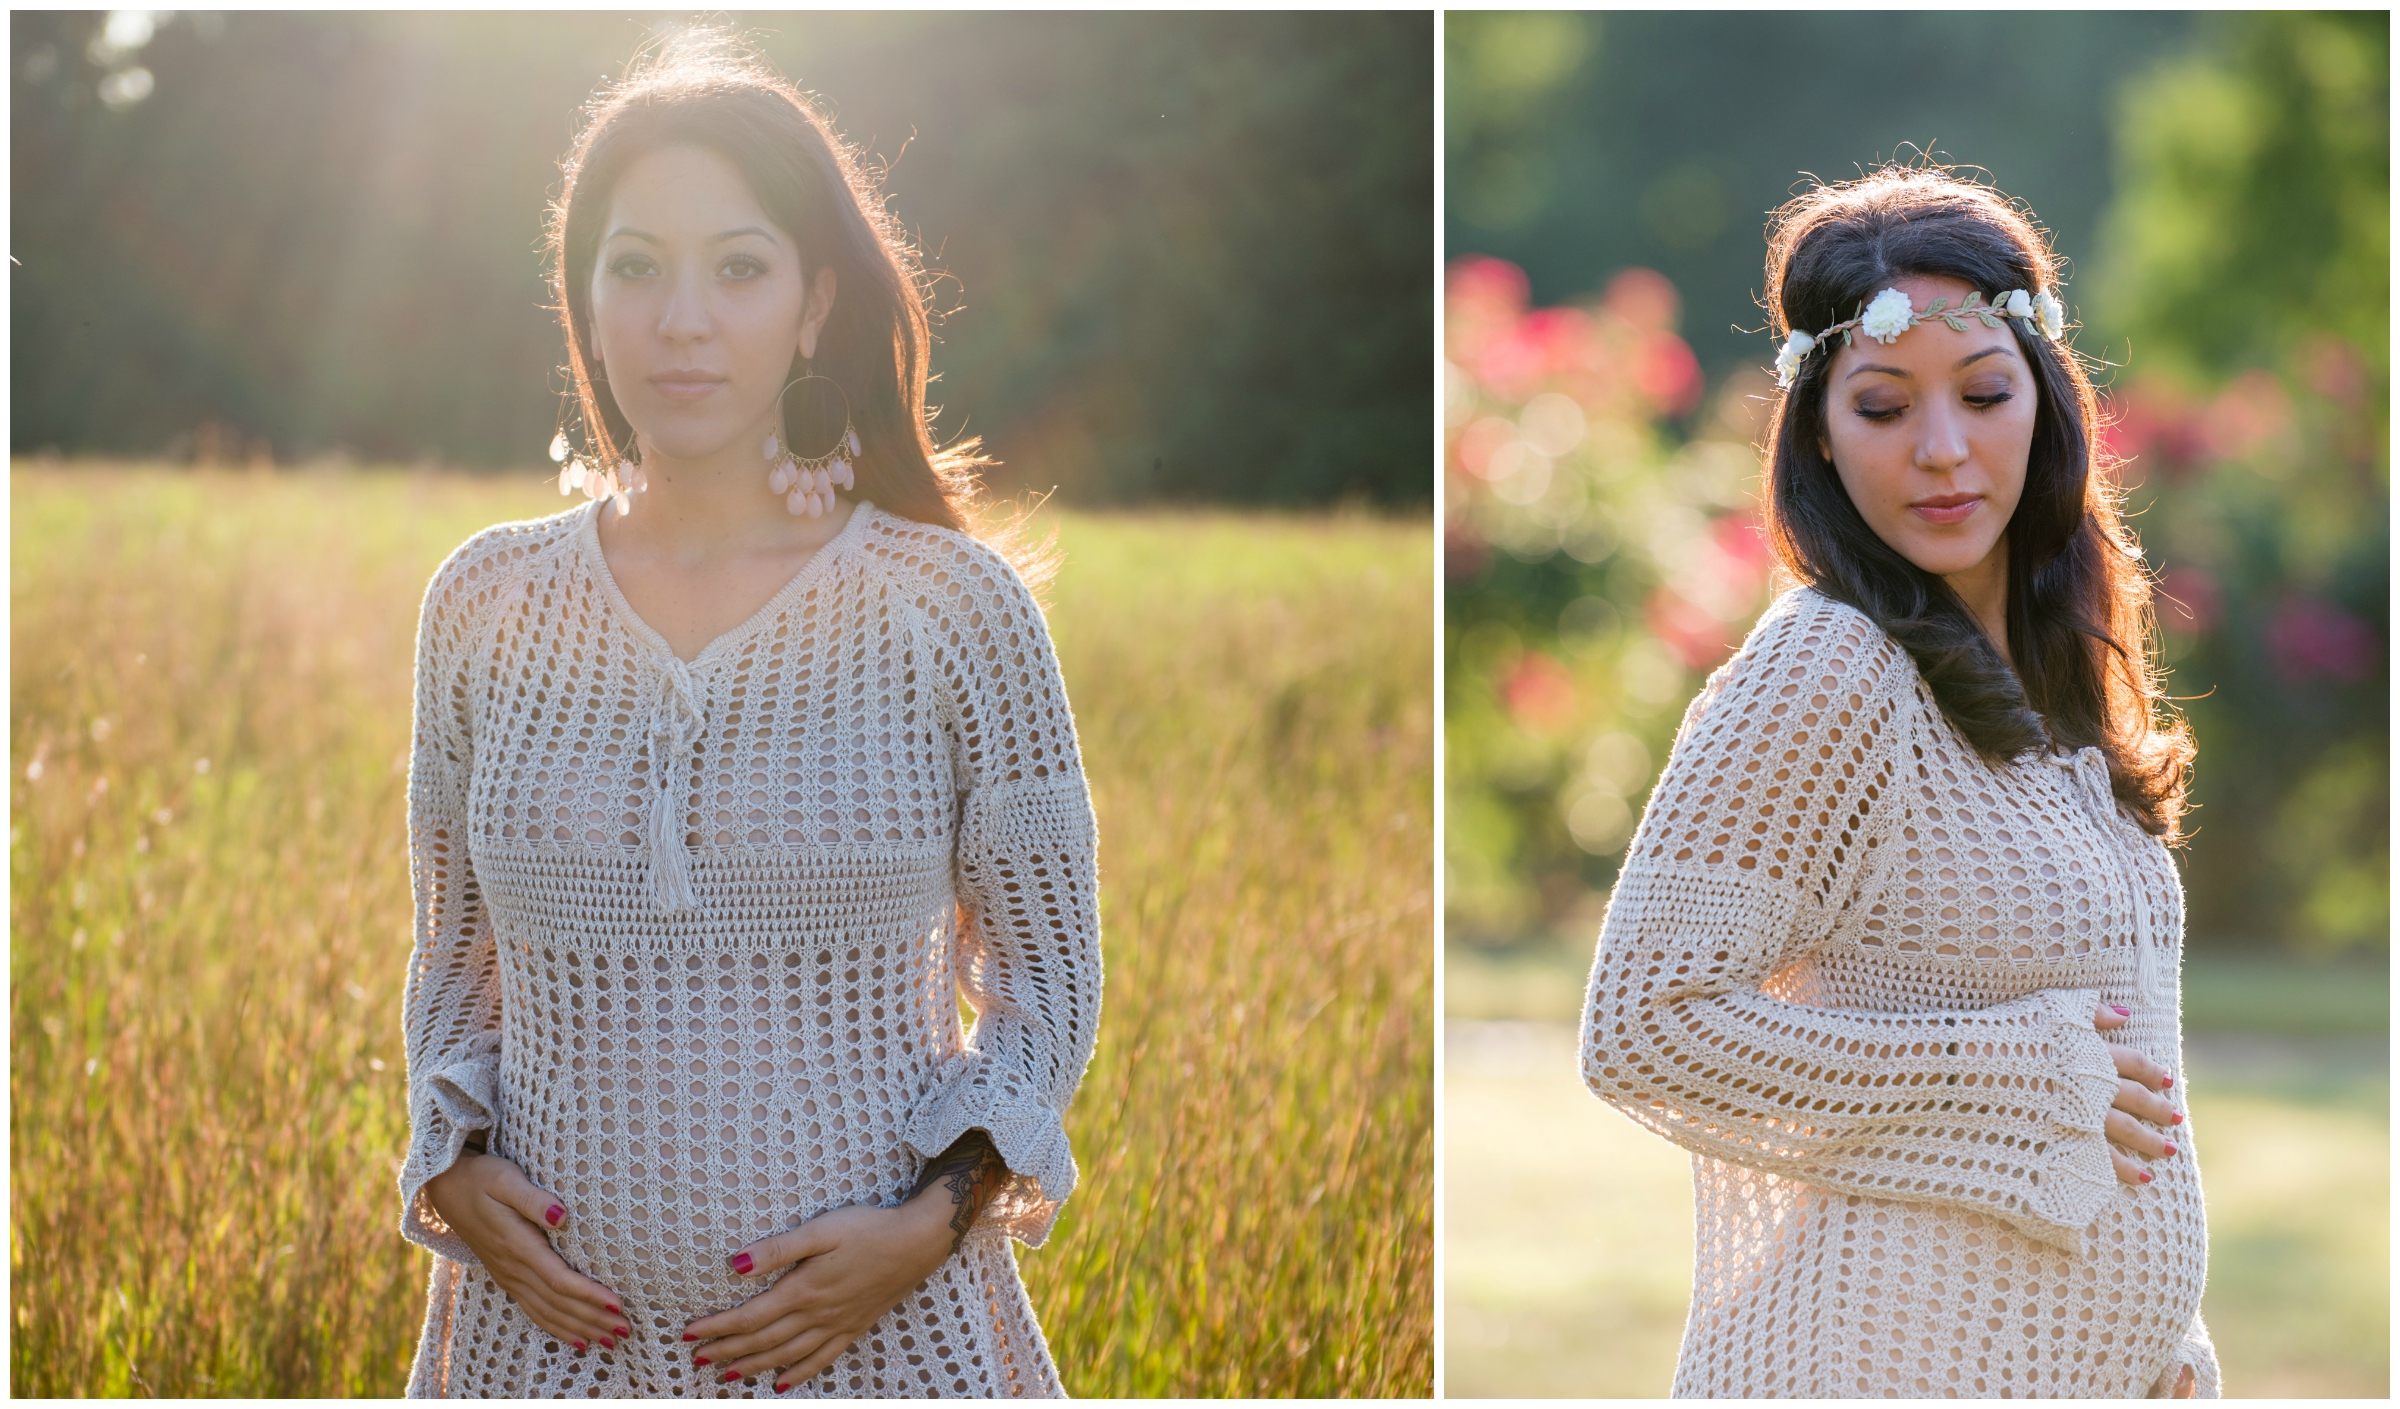 I am in love with the light in these maternity portraits. The way the sunlight catches the hair adds so much to these images.